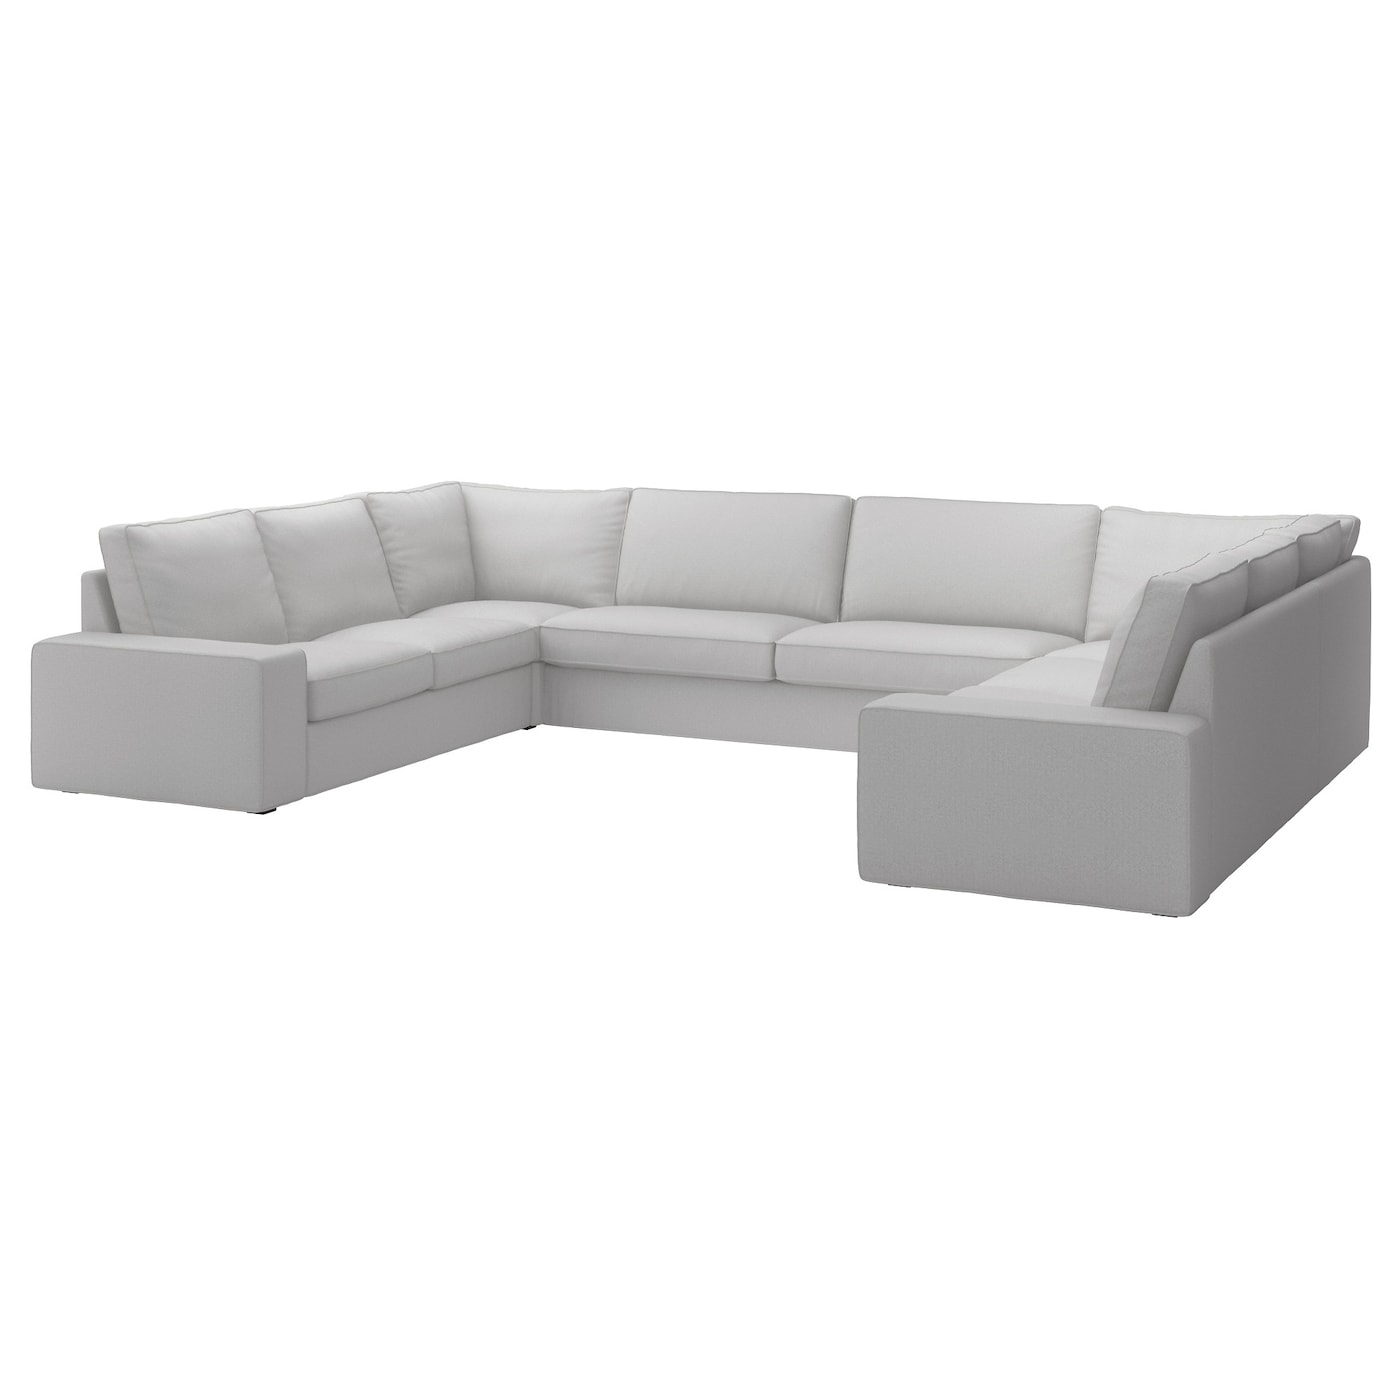 Kivik canap en u 6 places orrsta gris clair ikea for Canape 6 places ikea